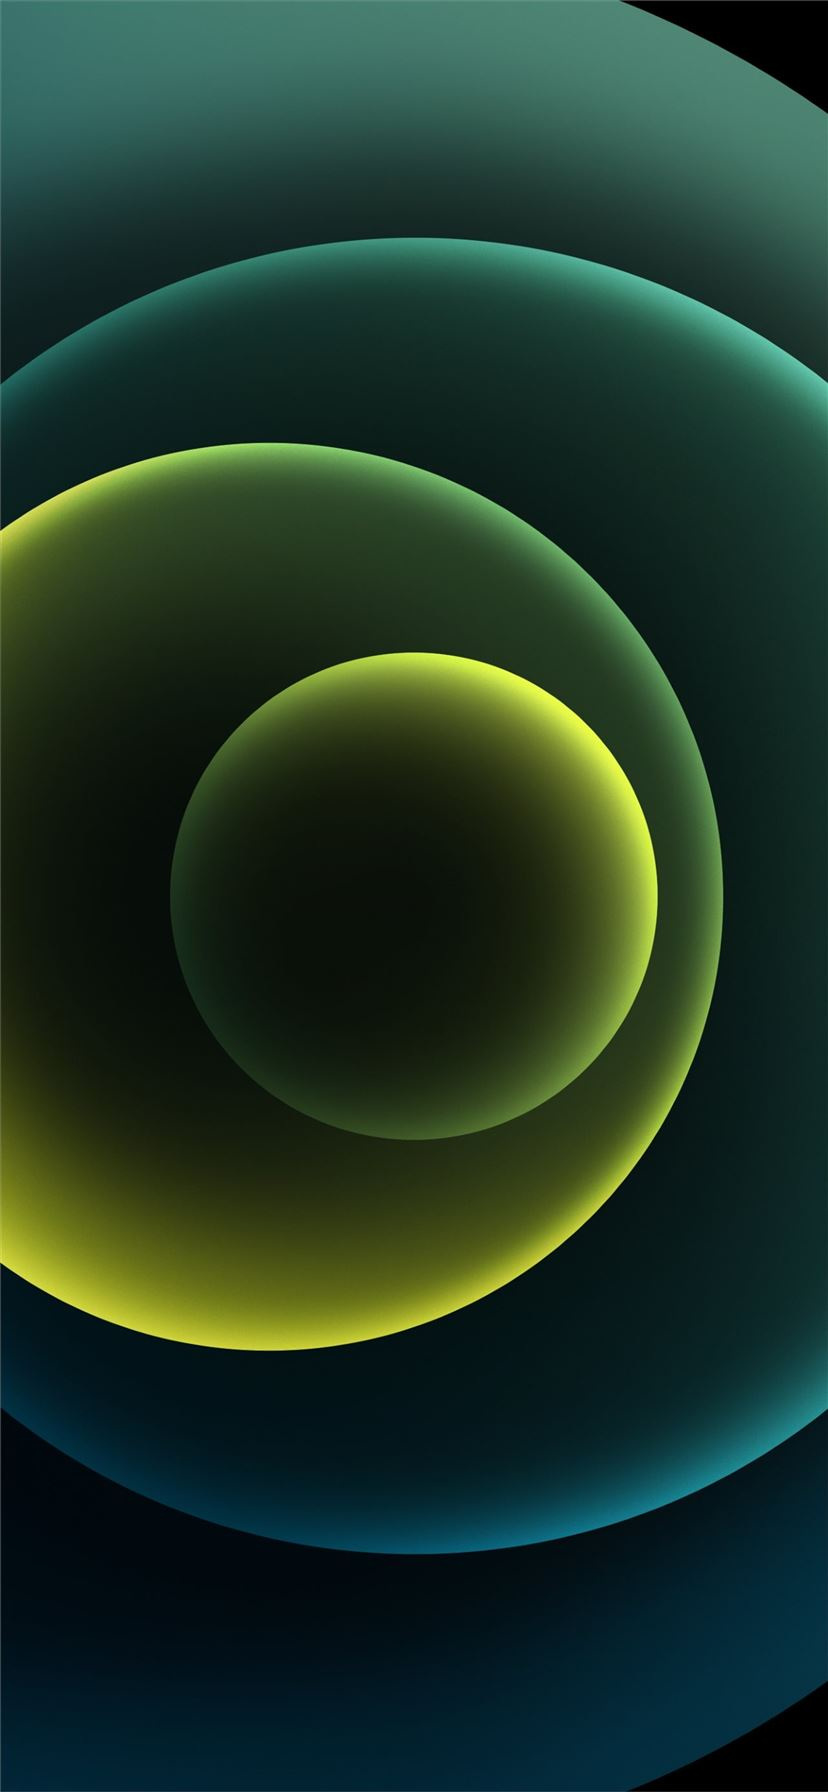 Colorful iPhone 12 Stock wallpaper Orbs Green Dark iPhone 11 wallpaper